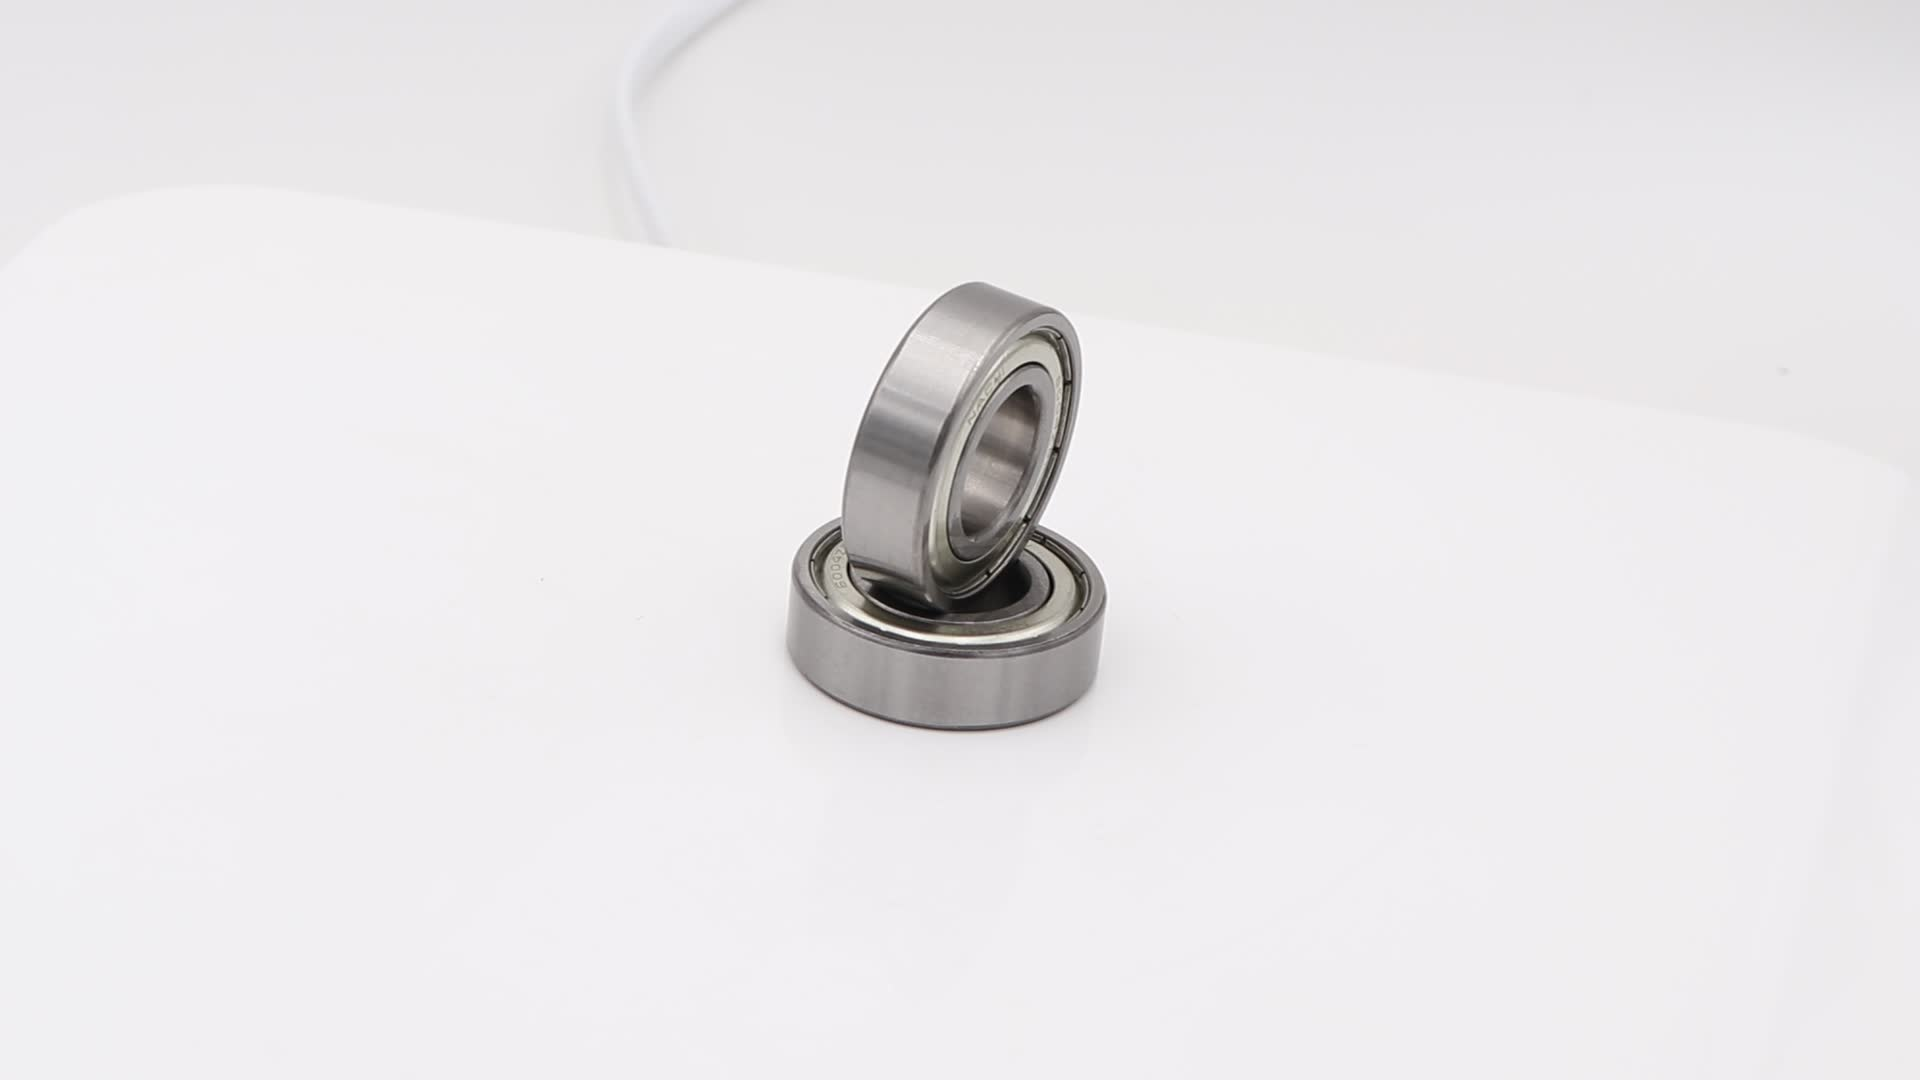 S6005 2rs S6005z S6005zz S6005 SS Bantalan 6005 Stainless Bearing